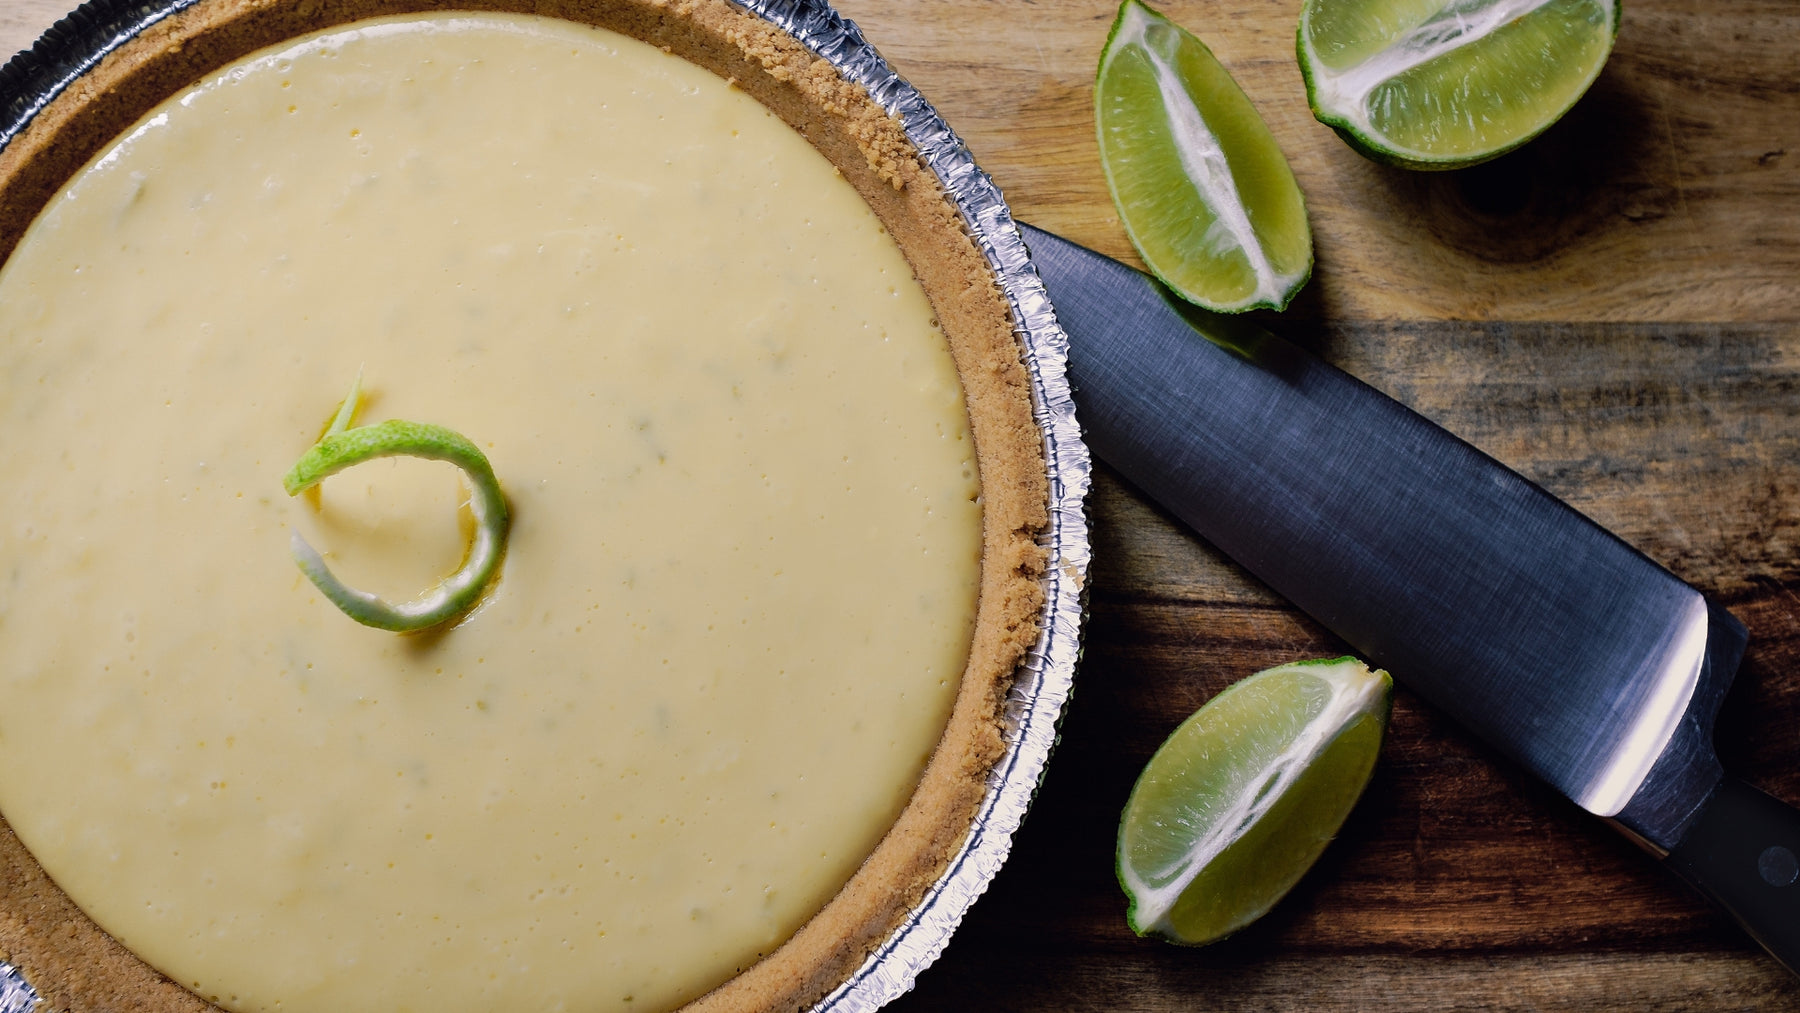 Gluten Free Avocado Key Lime Pie